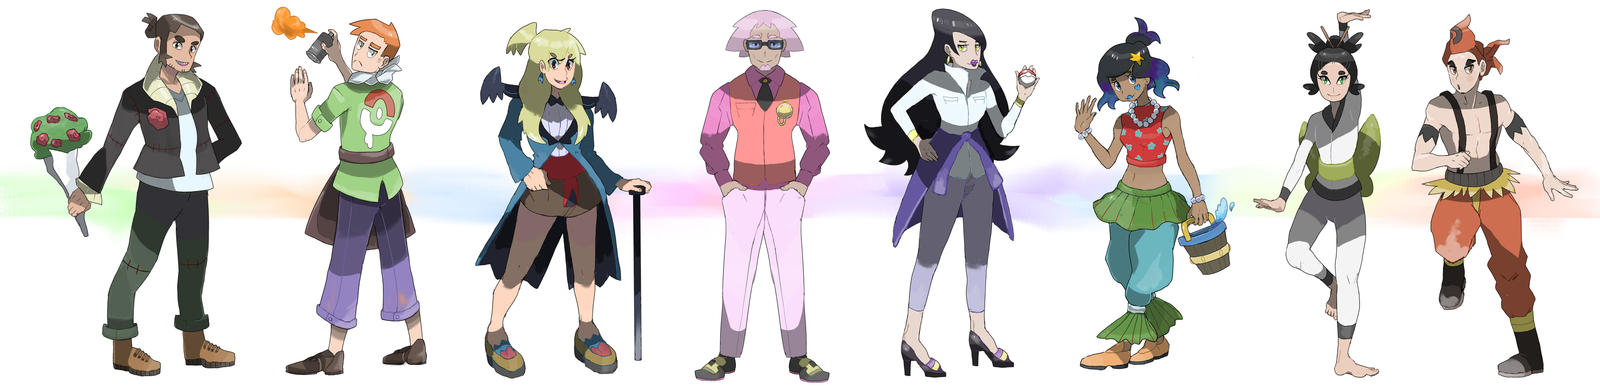 Gym Leader Set by TRspicy